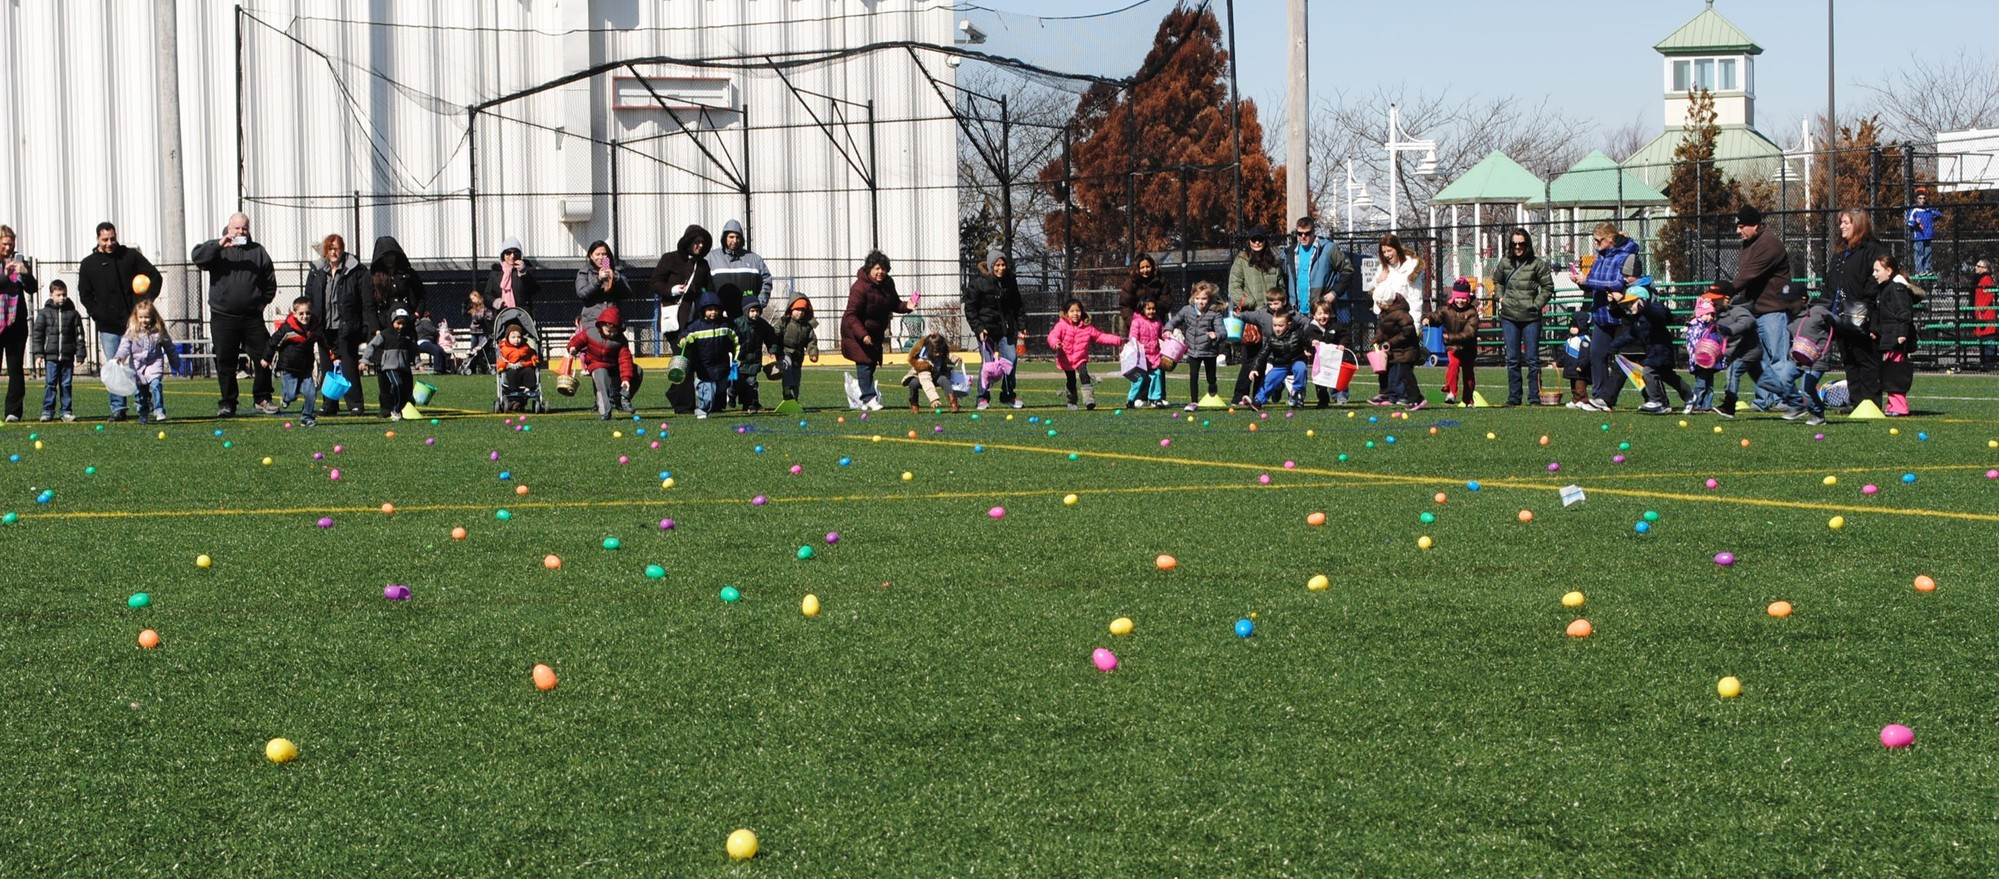 Last year's Easter egg hunt at the Rec.